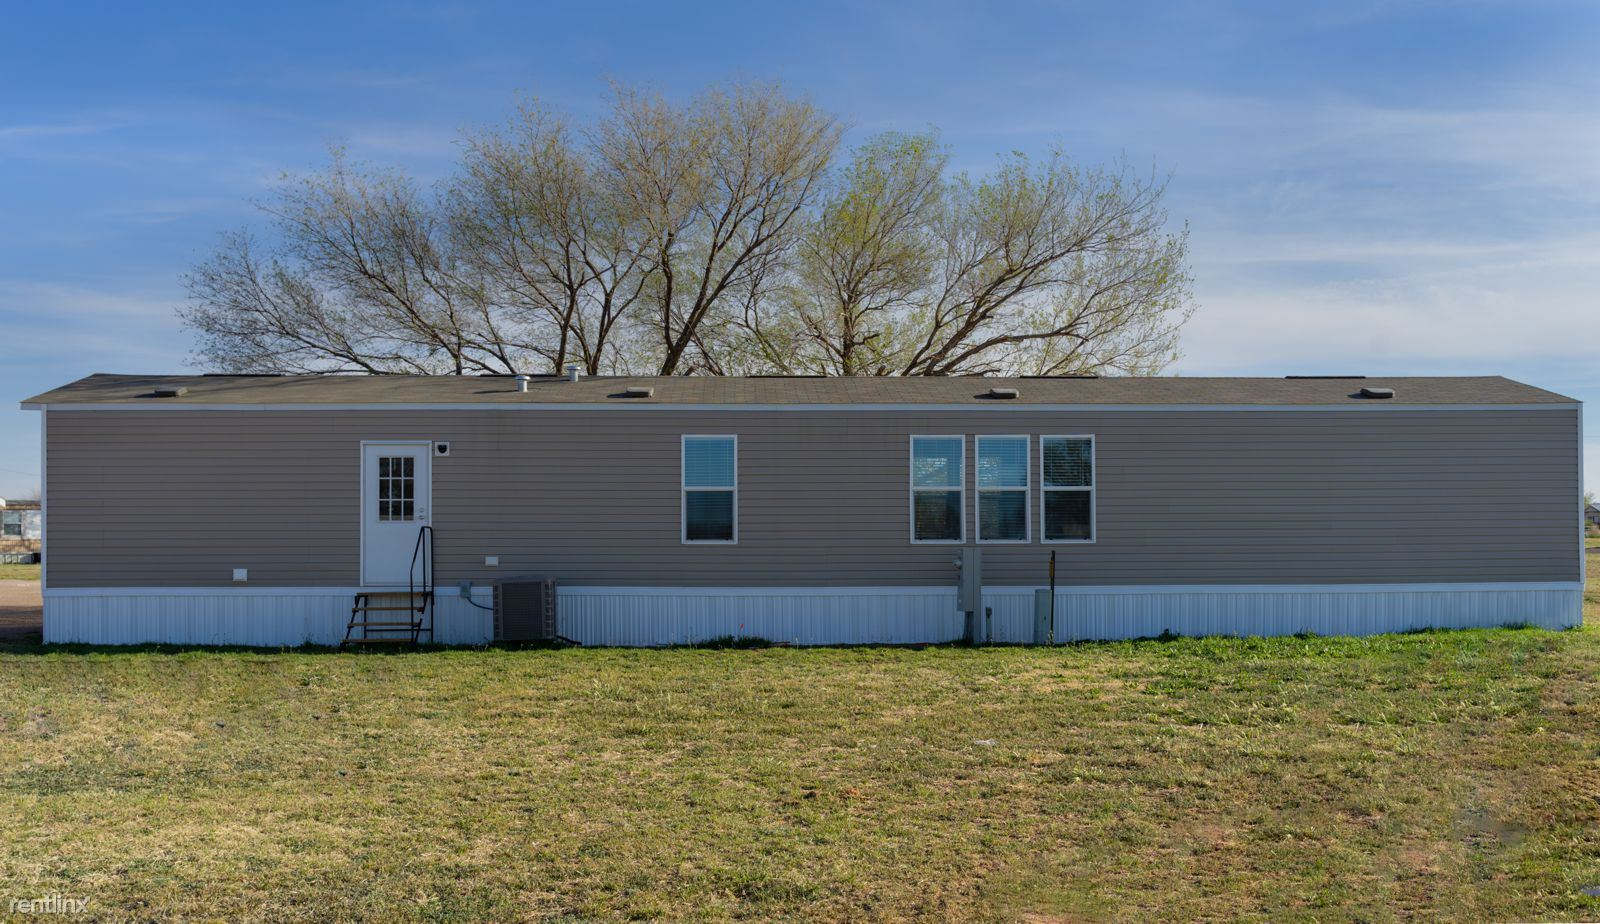 Texas Hwy 114 & Ave T, Levelland, TX - $850